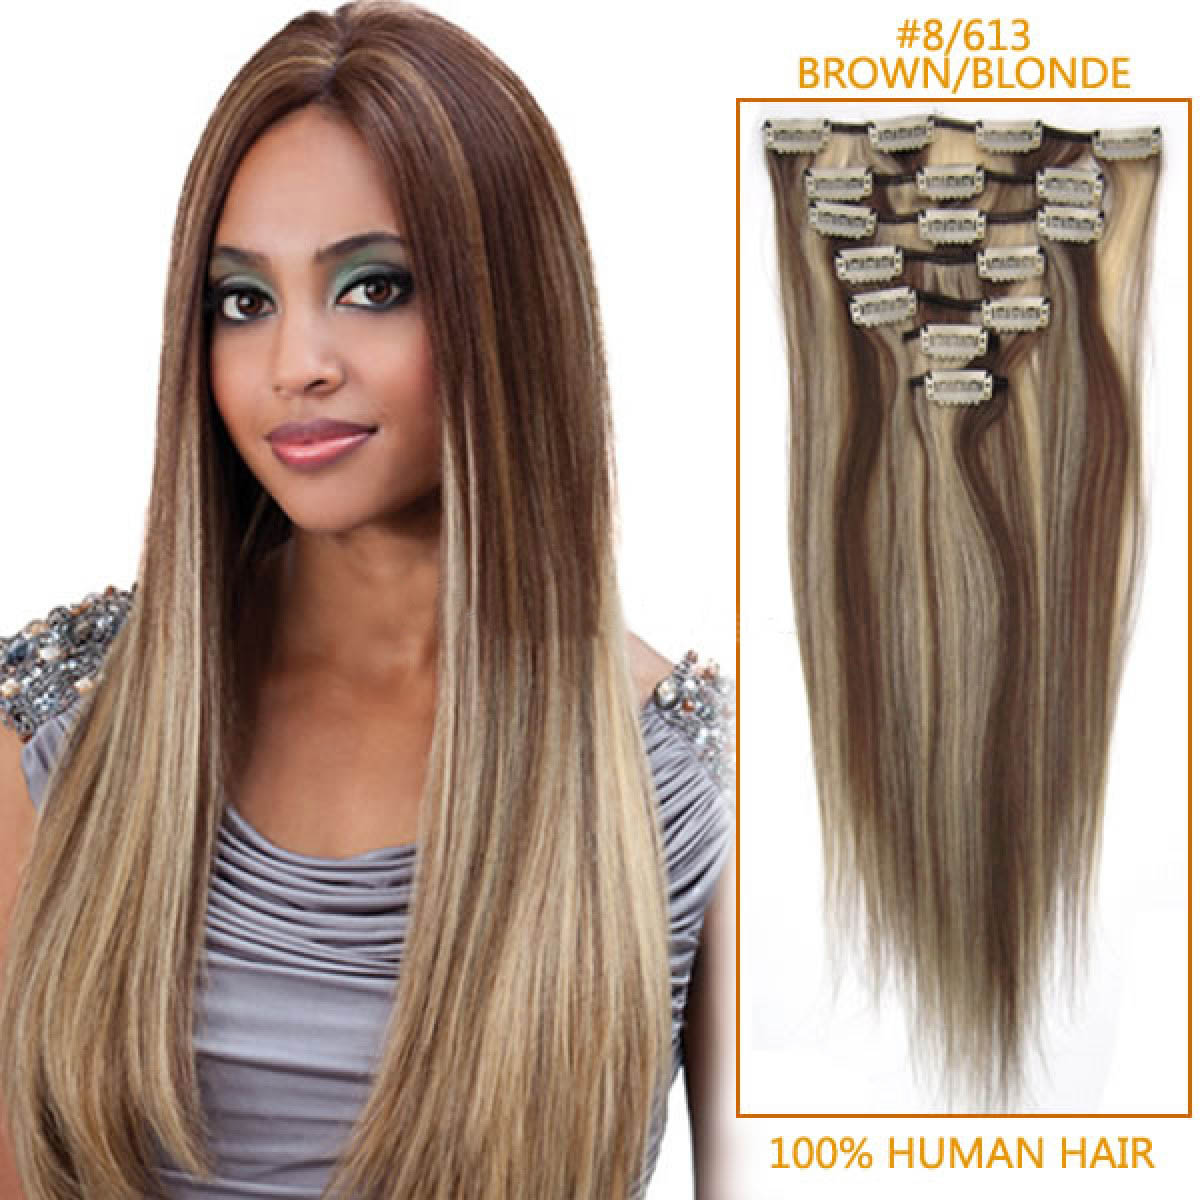 30 Inch 8613 Brownblonde Clip In Human Hair Extensions 8pcs